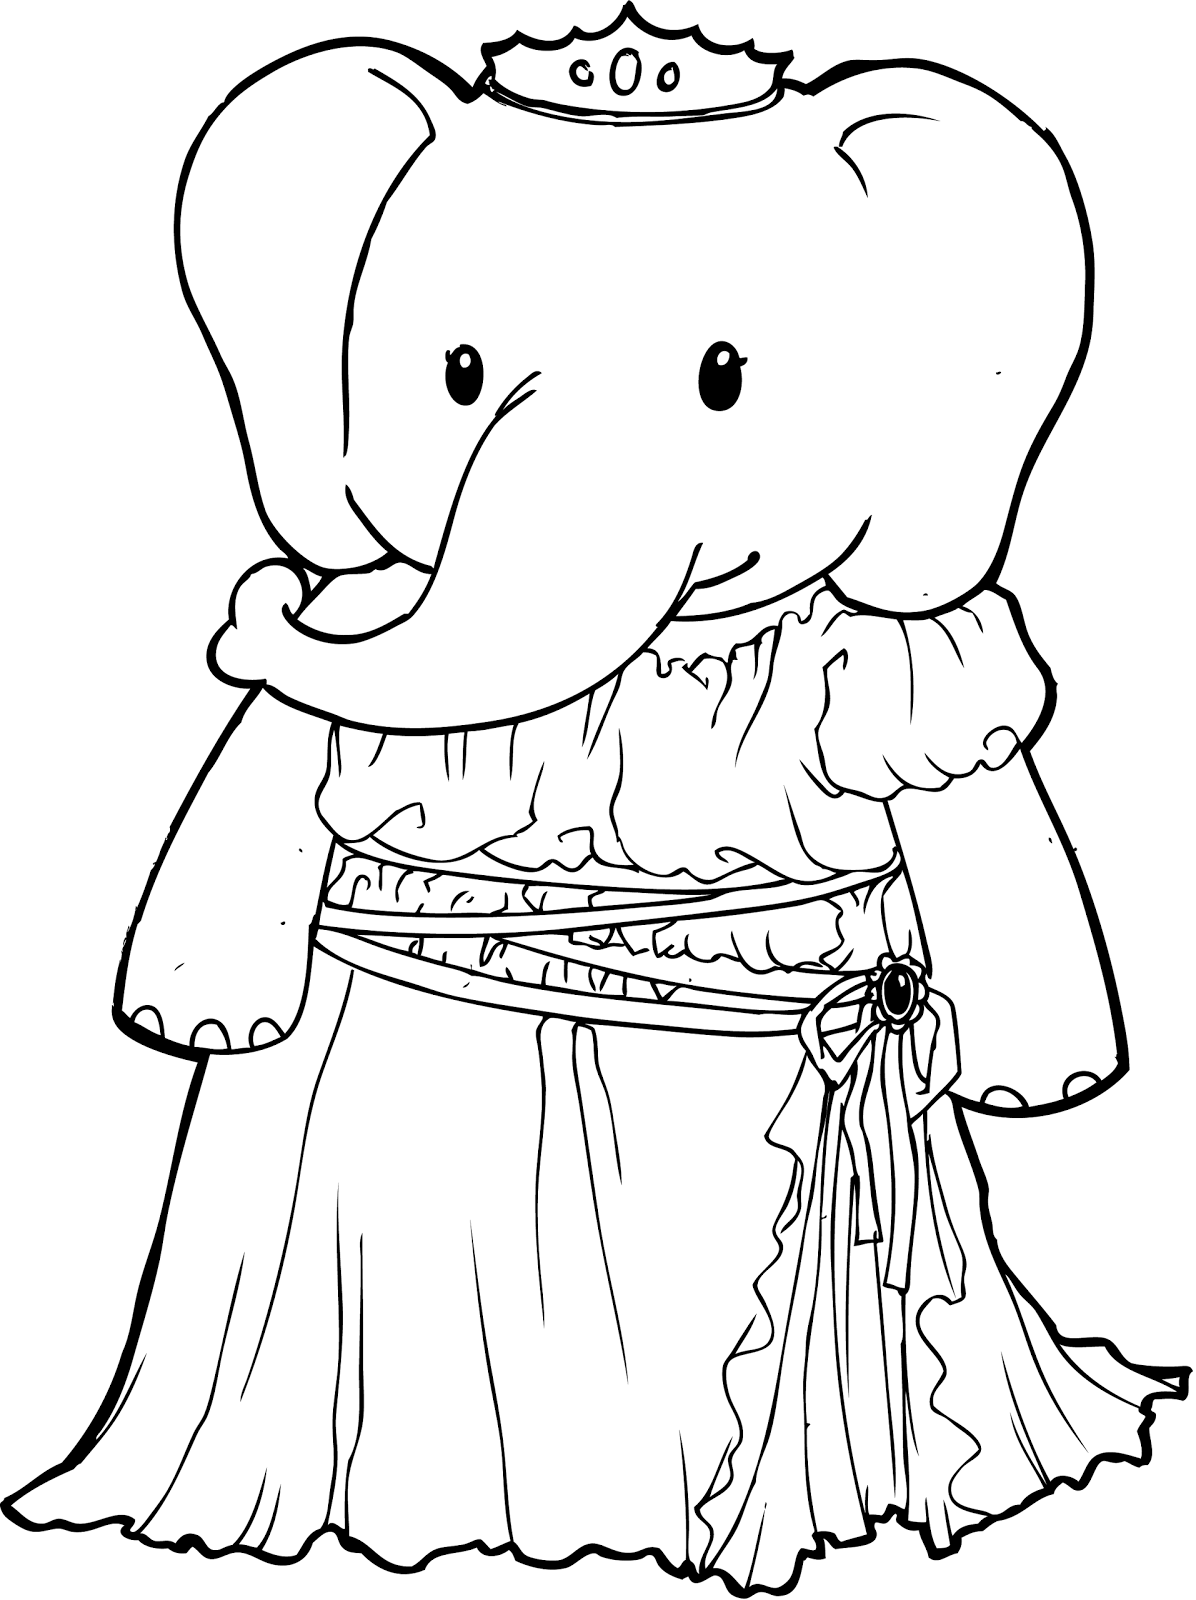 princess coloring pages brings you a very unusual coloring page of an